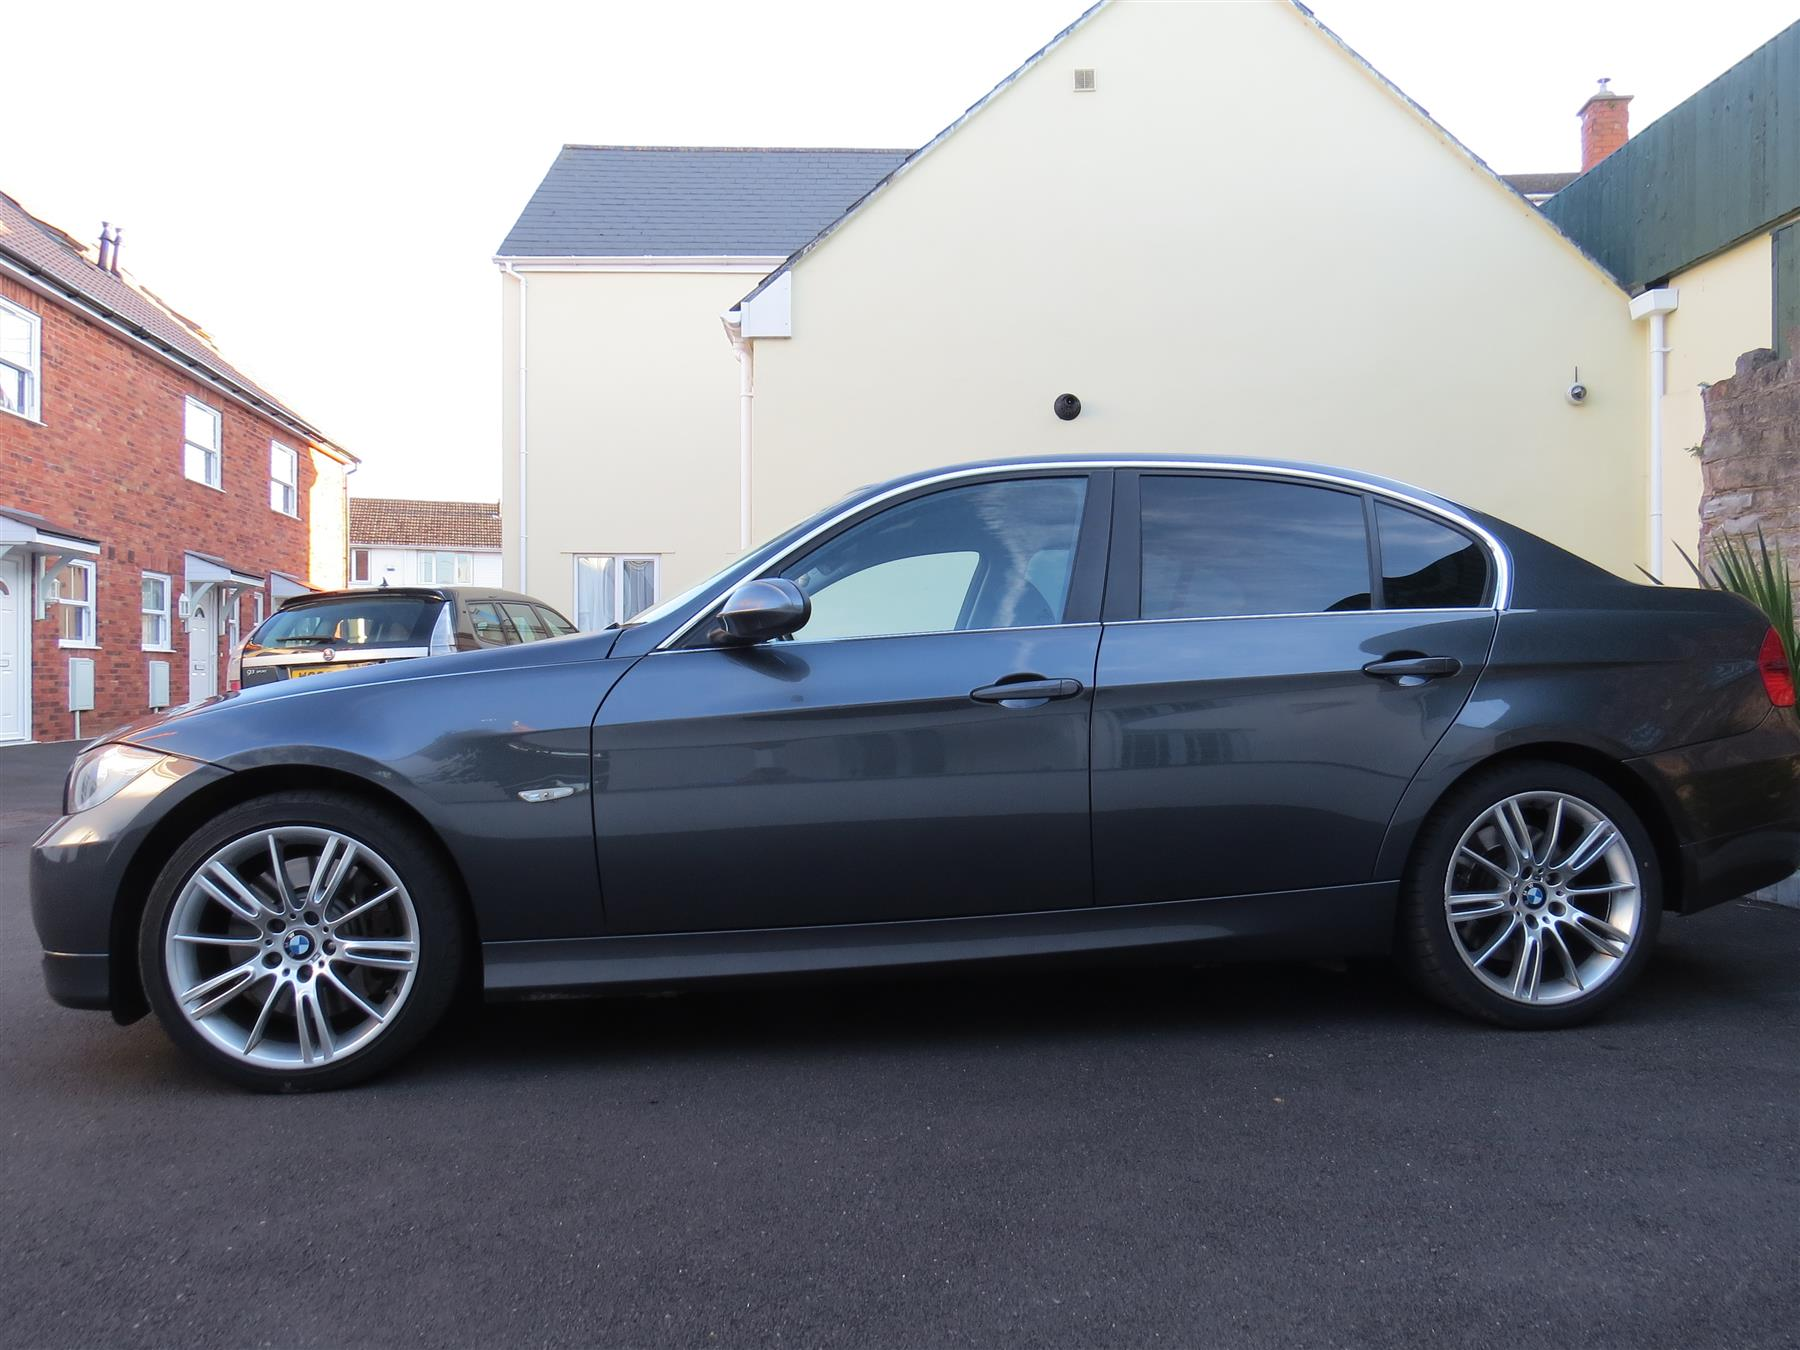 BMW 3 series 335d 2007 photo - 2